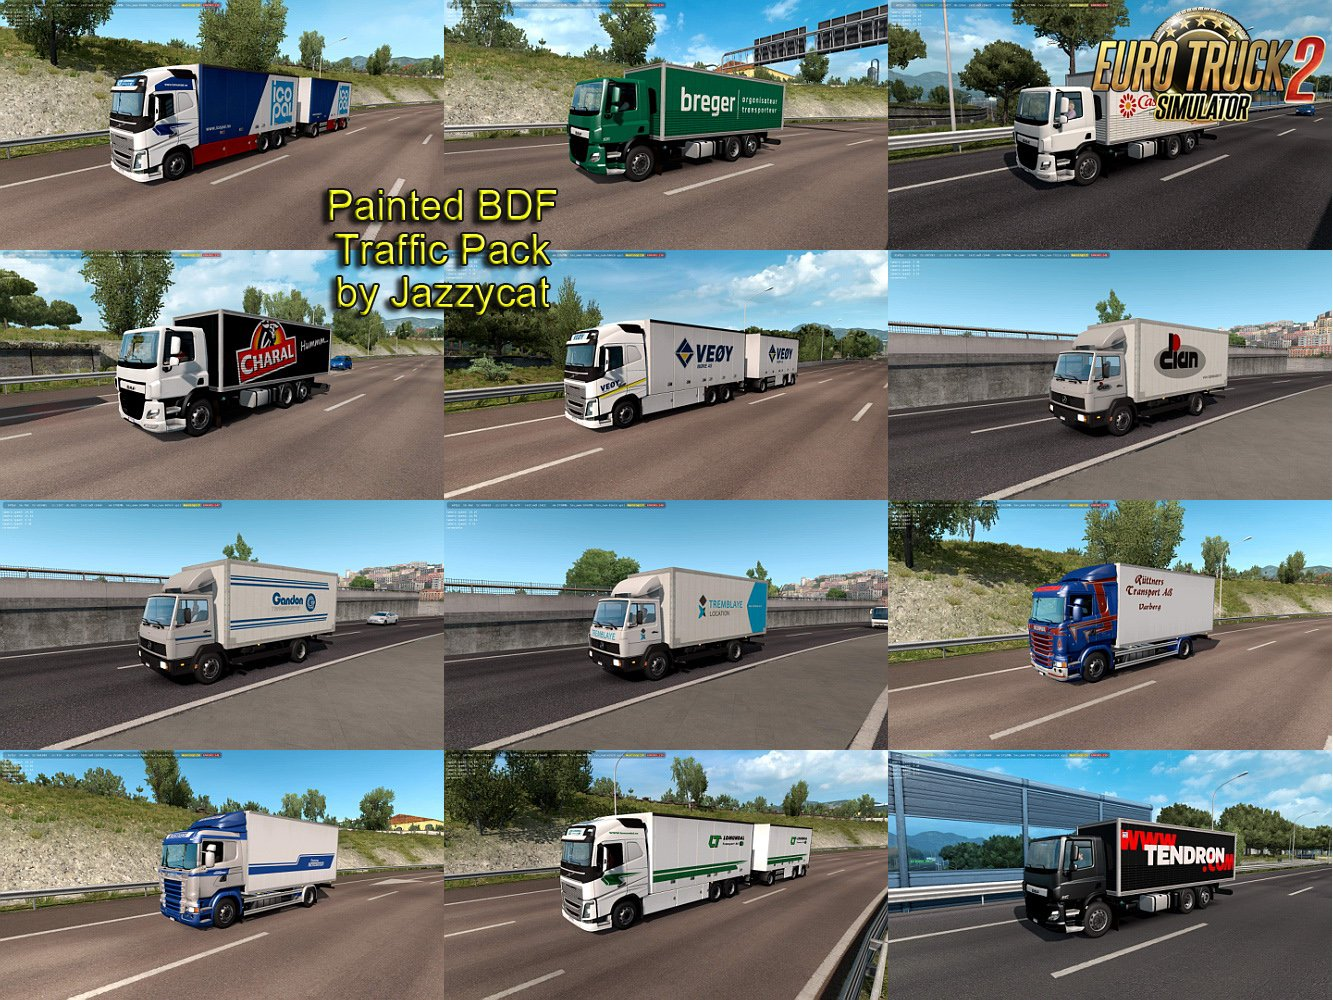 Painted BDF Traffic Pack v4.2 by Jazzycat